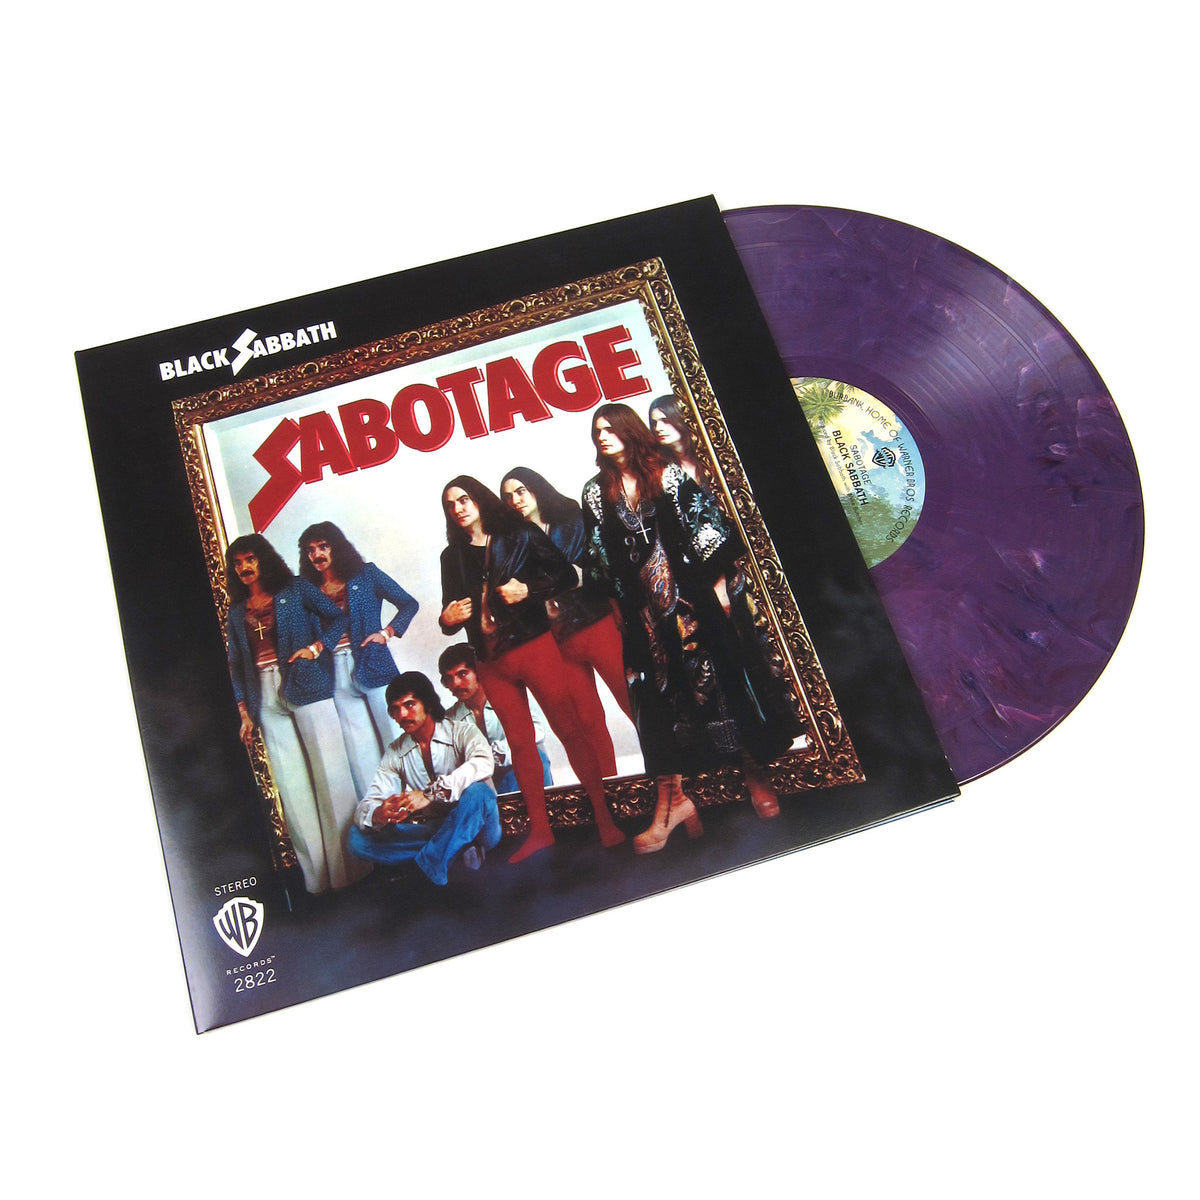 Black Sabbath: Sabotage (180g, Colored Vinyl) Vinyl LP